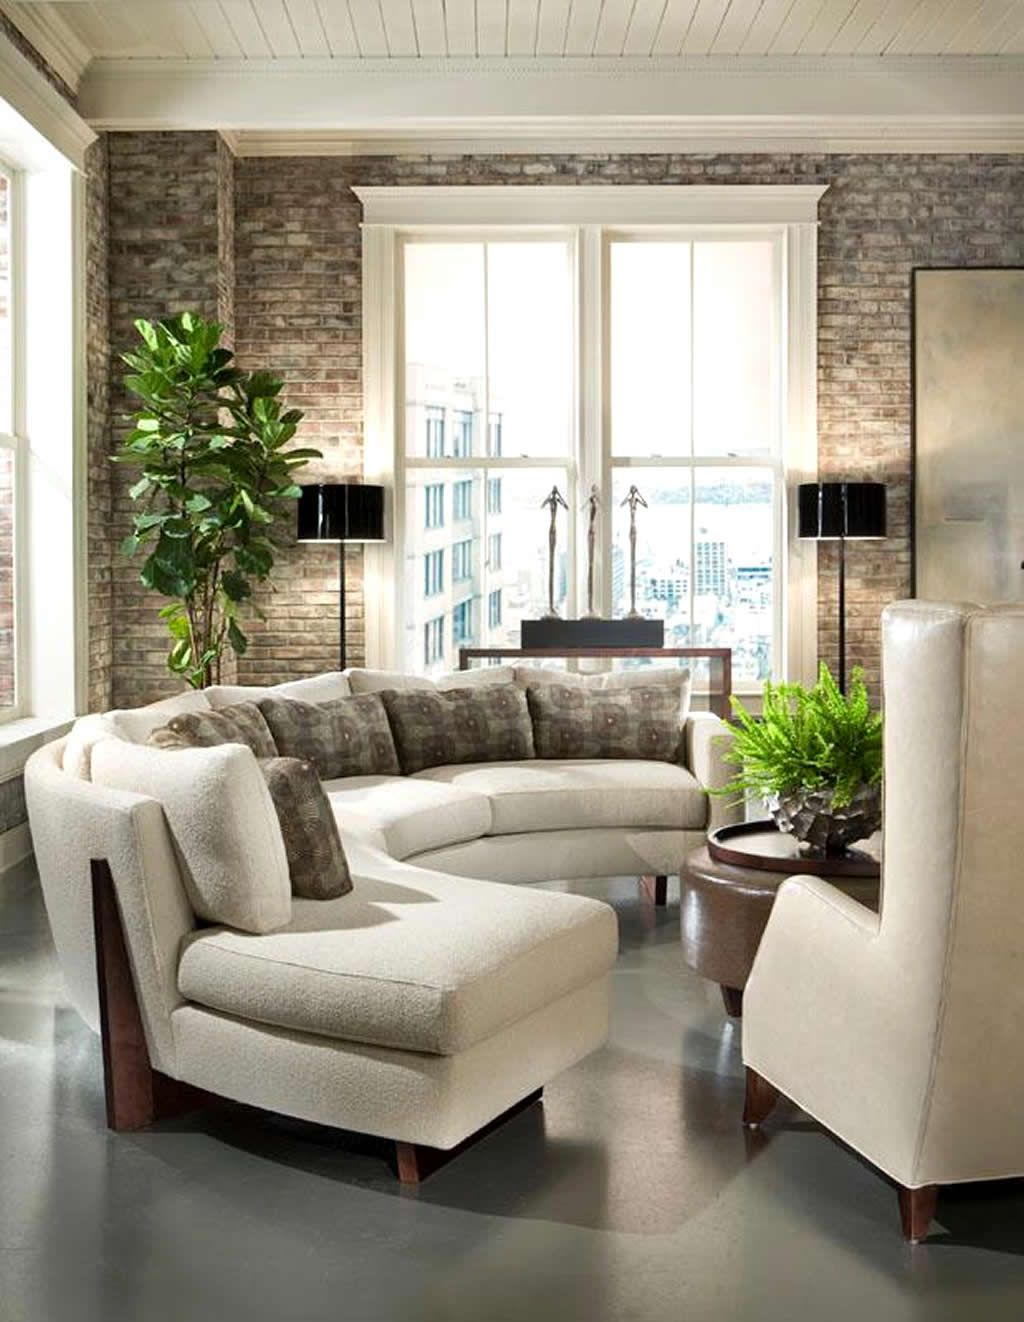 Seeking Information About Interior Design For The Home Try These Tips Useful Home Decor Tips